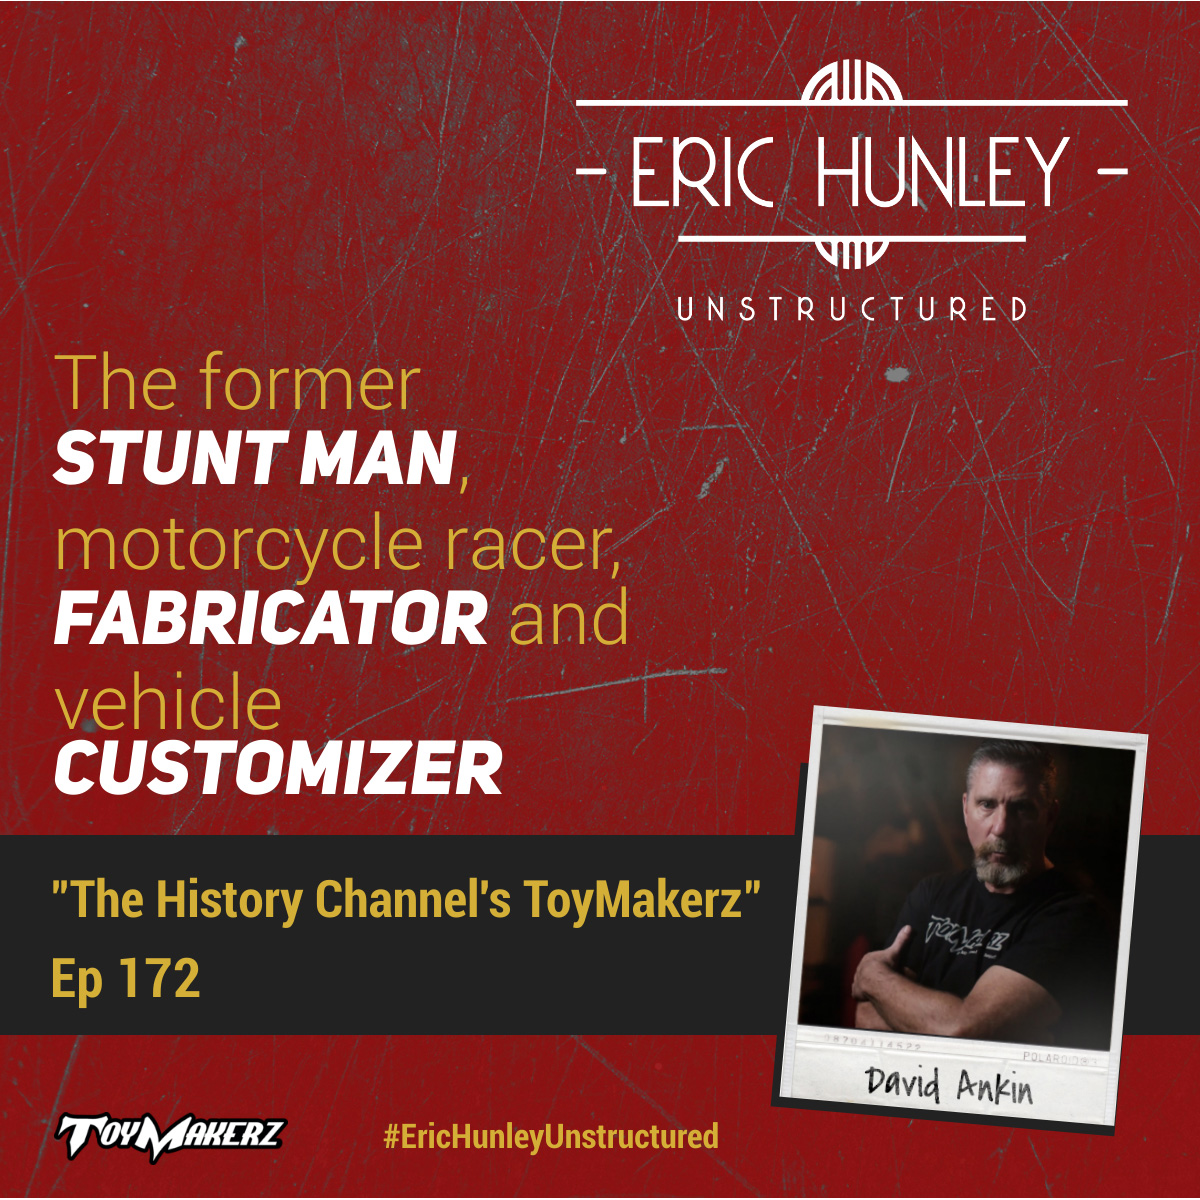 Eric Hunley Unstructured Podcast - 172 David Ankin Square Post